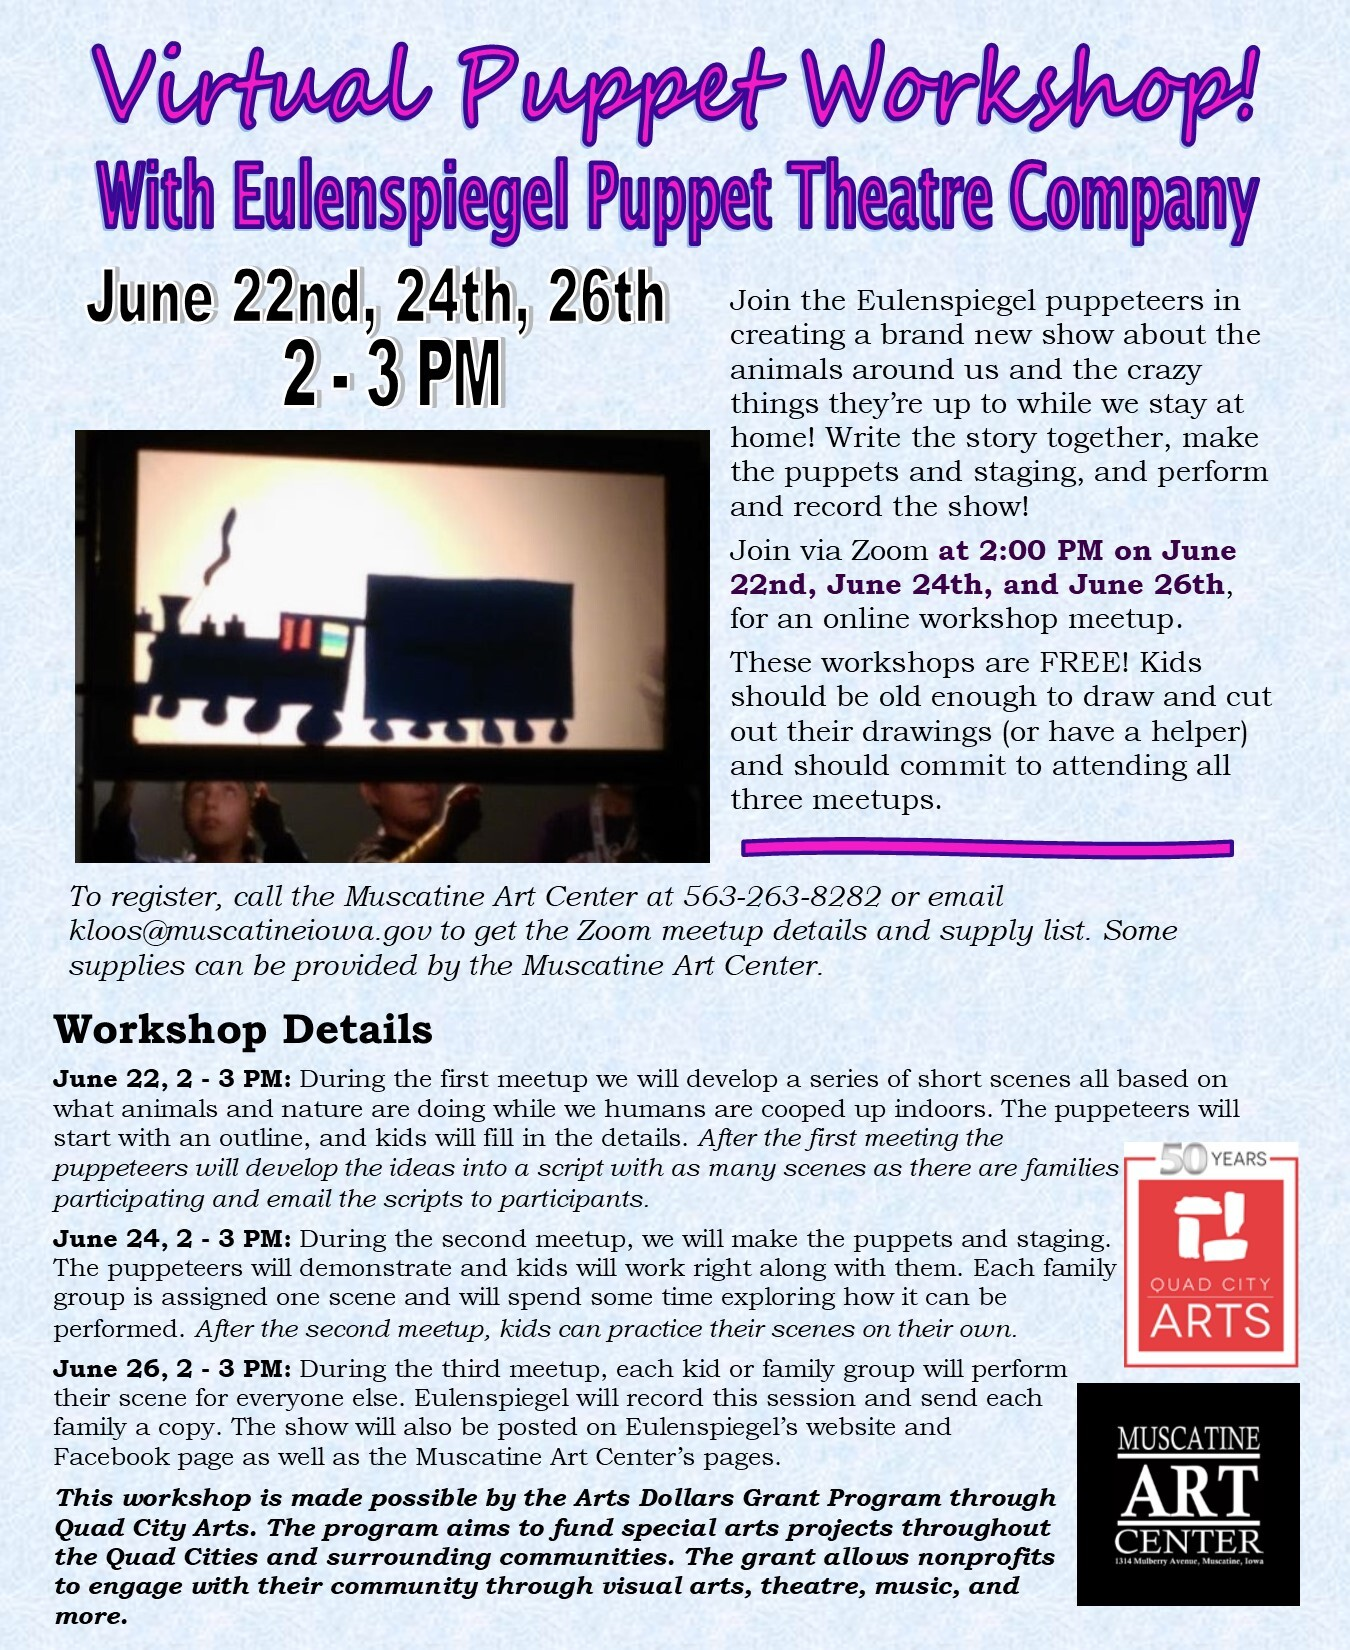 Shadow Puppet Workshop with Eulenspiegel Puppet Theatre Company Image